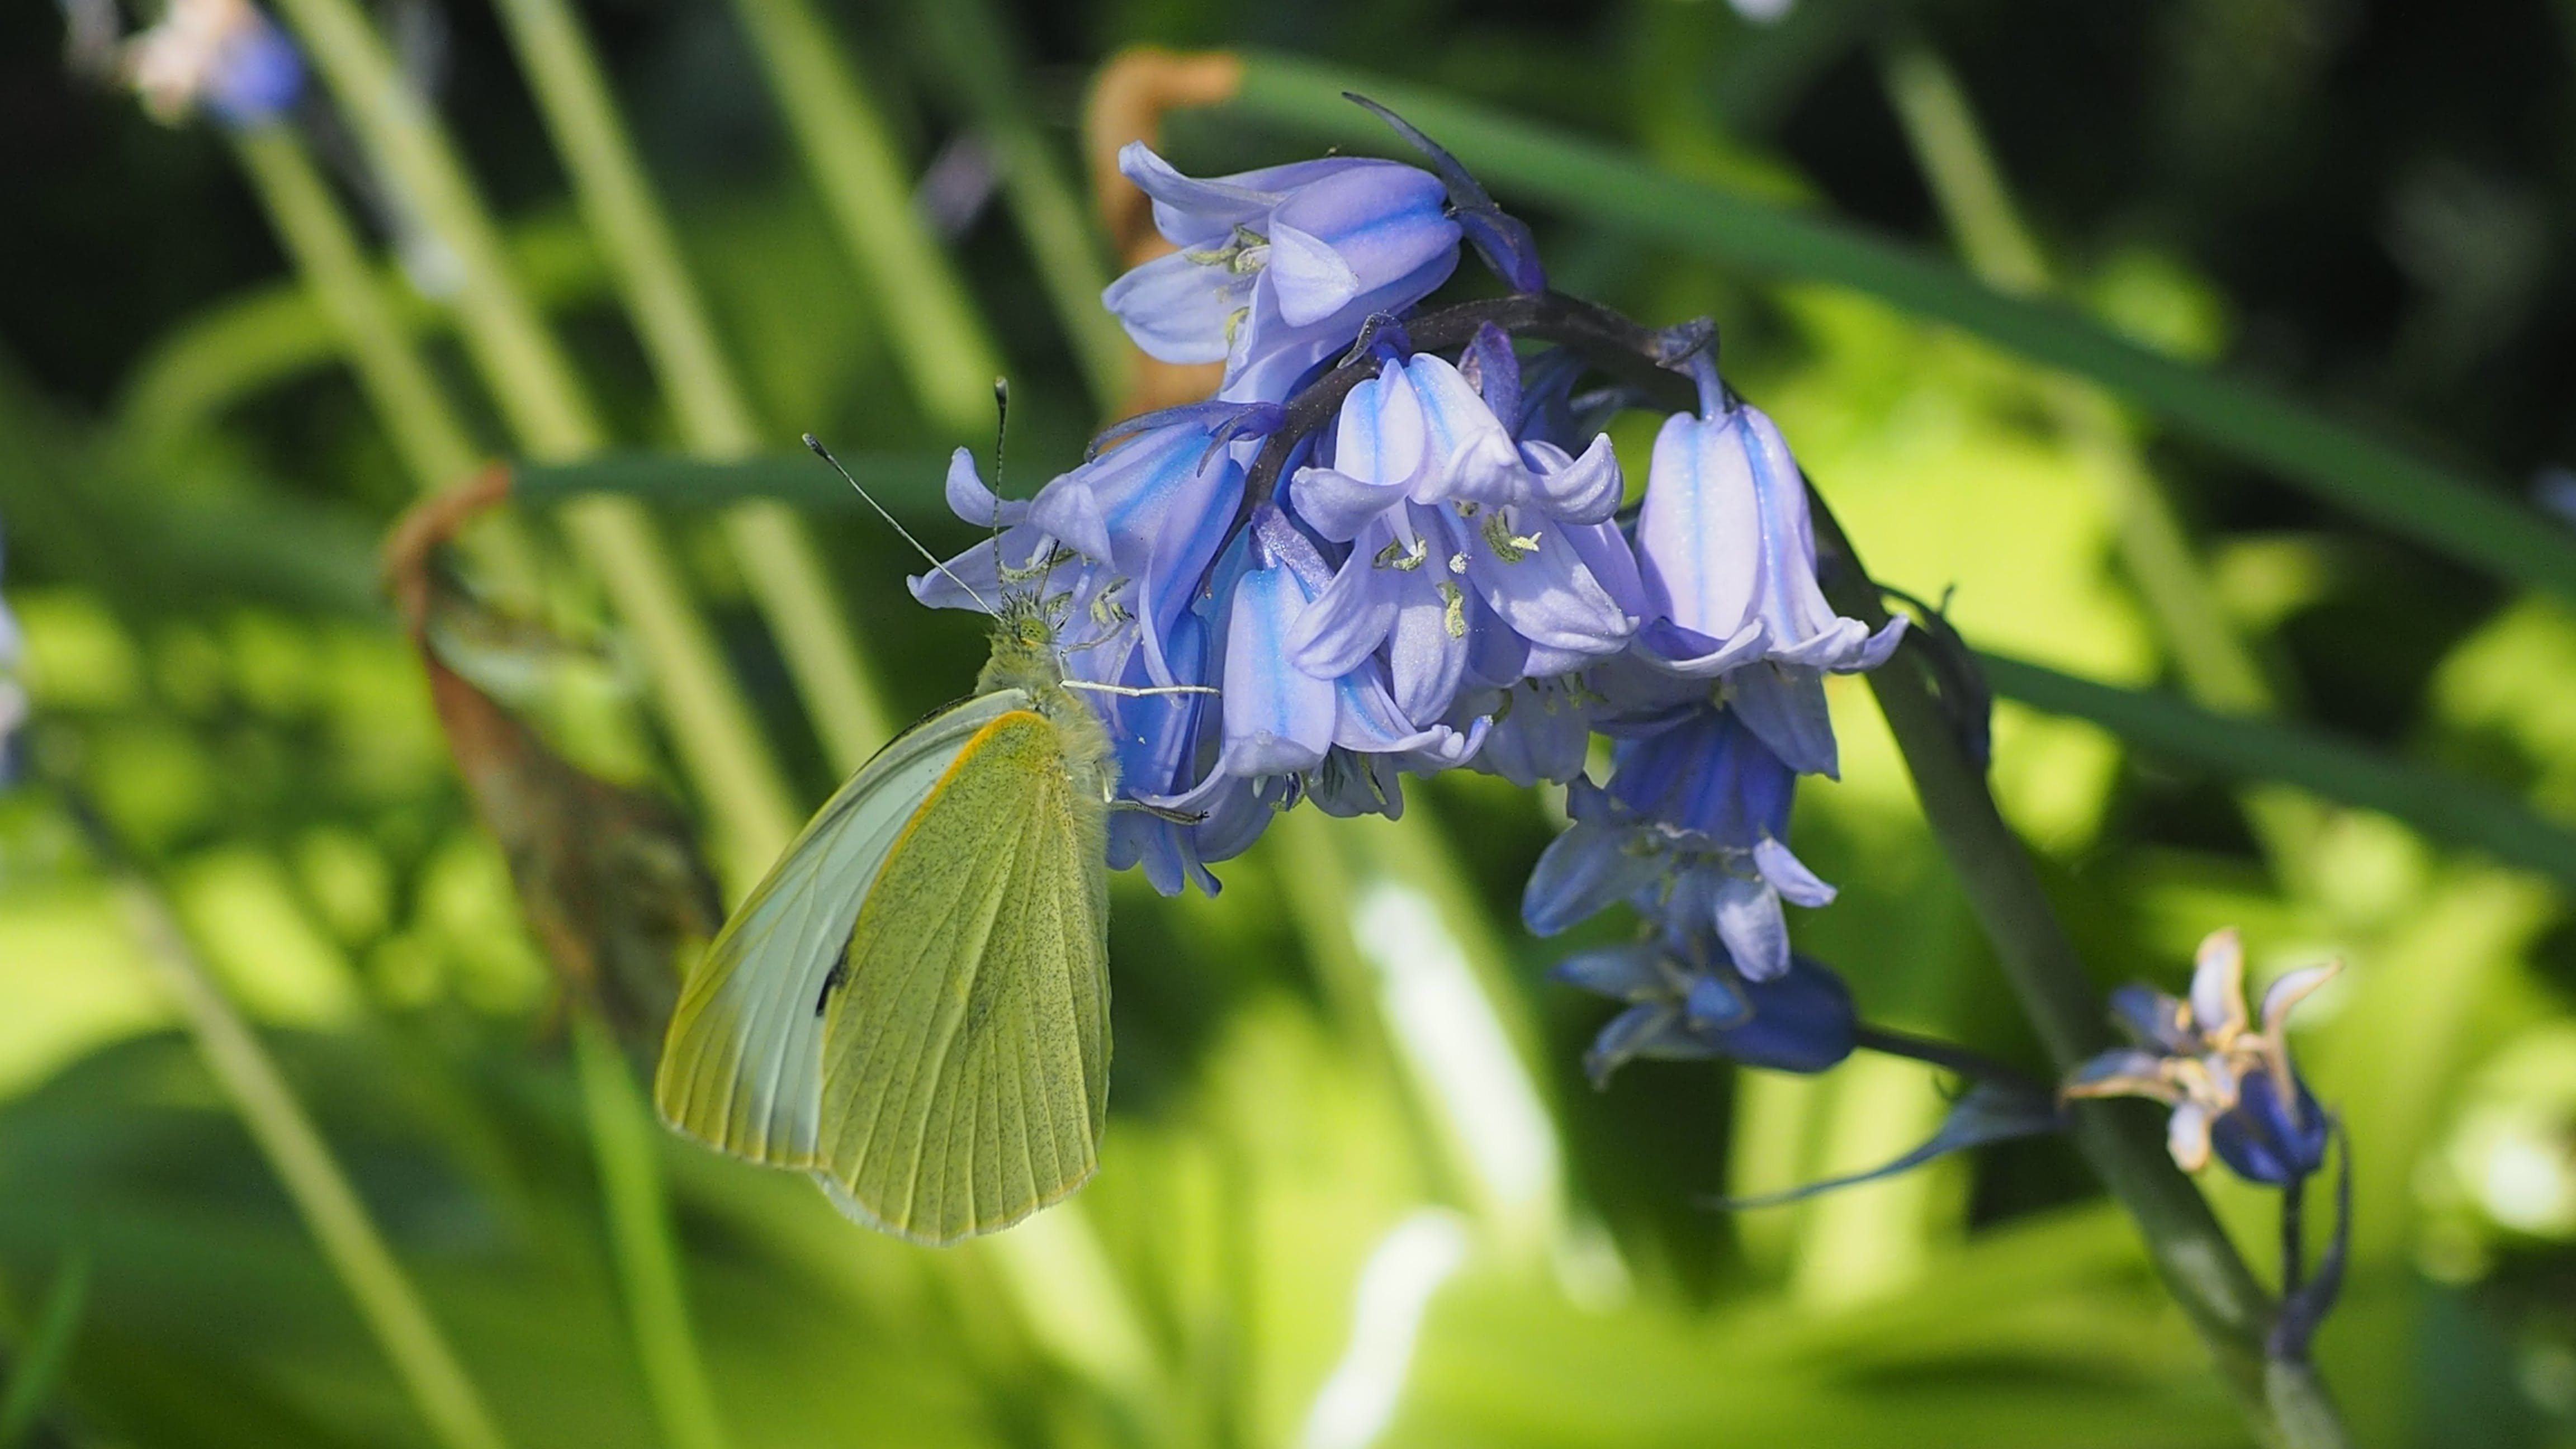 Free stock photo of bluebells, butterflies, butterfly, cabbage white